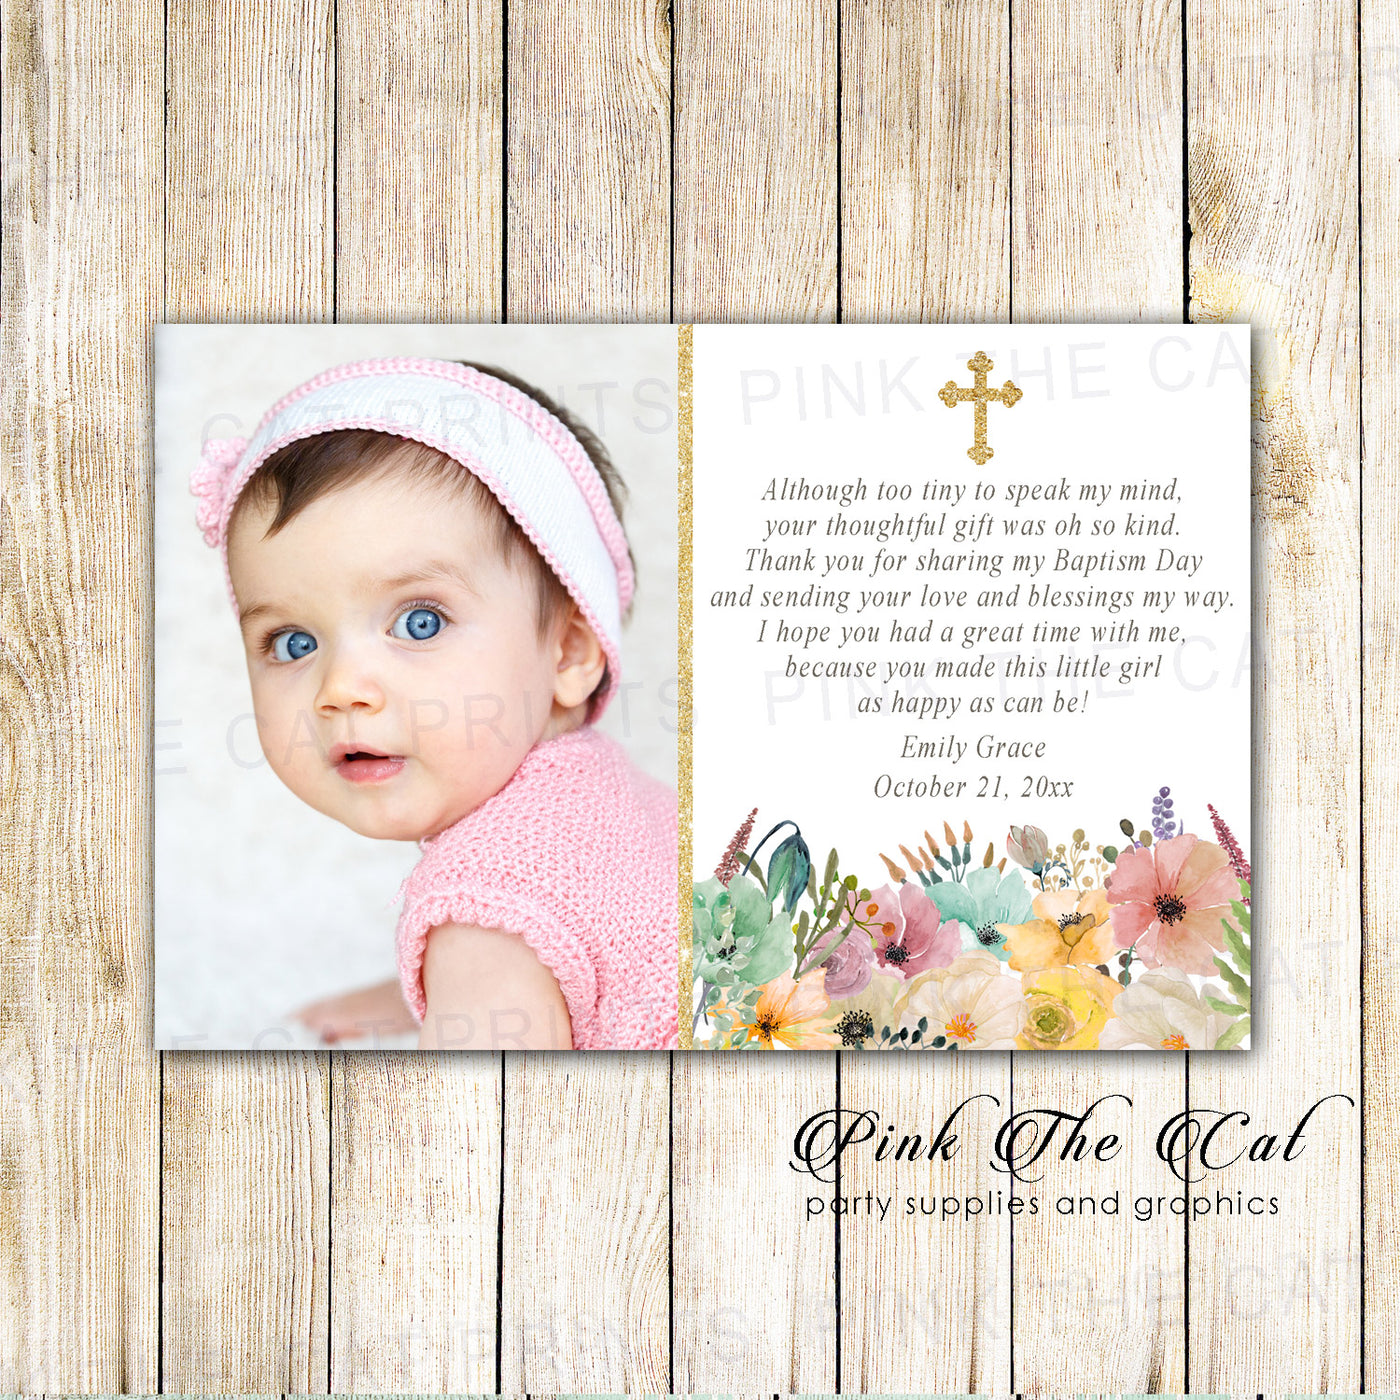 30 Thank You Cards Floral Girl Baptism Christening With Photo Pink